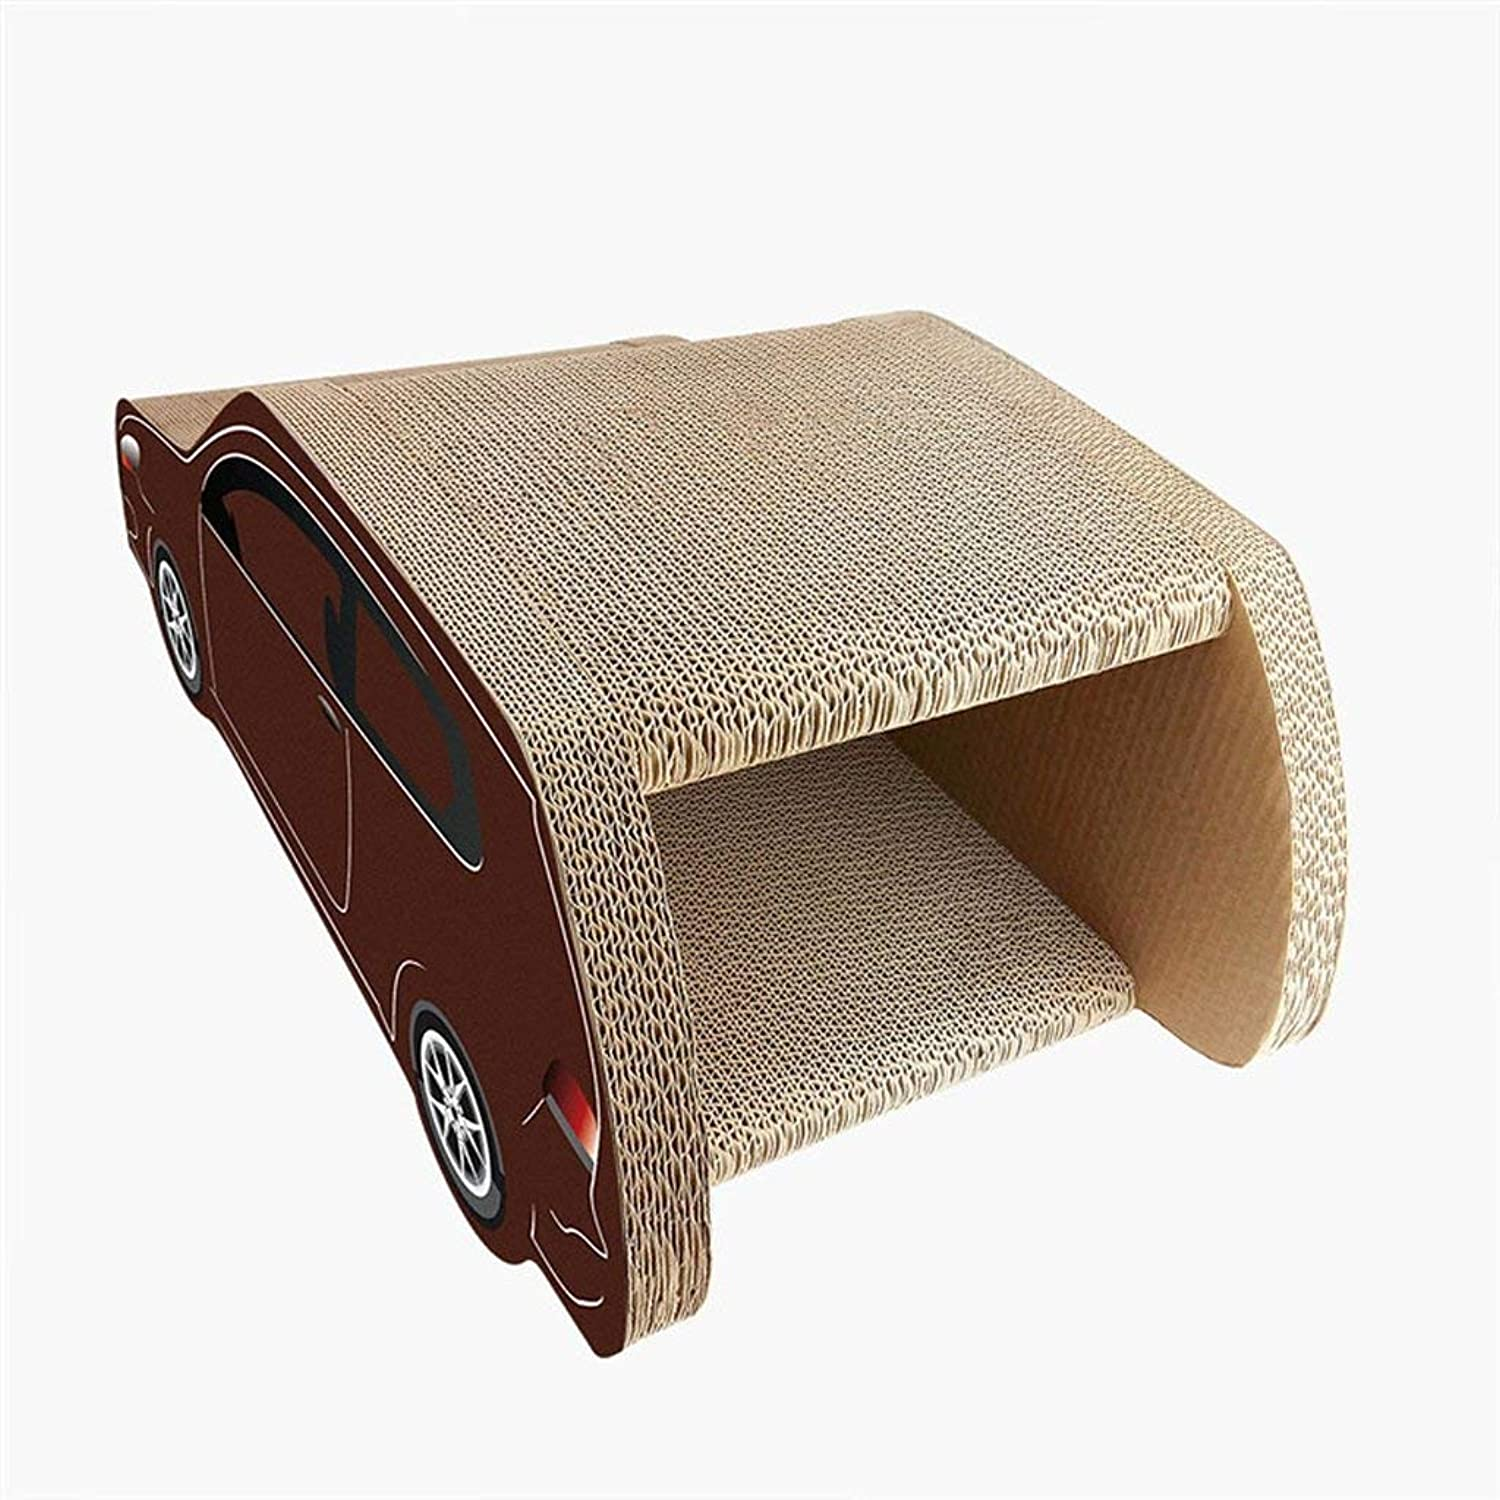 Car cat Scratch Board, Cat House Cat Scratch Board Corrugated Paper Does Not Hurt The Hand Luxury Cat House Carton House